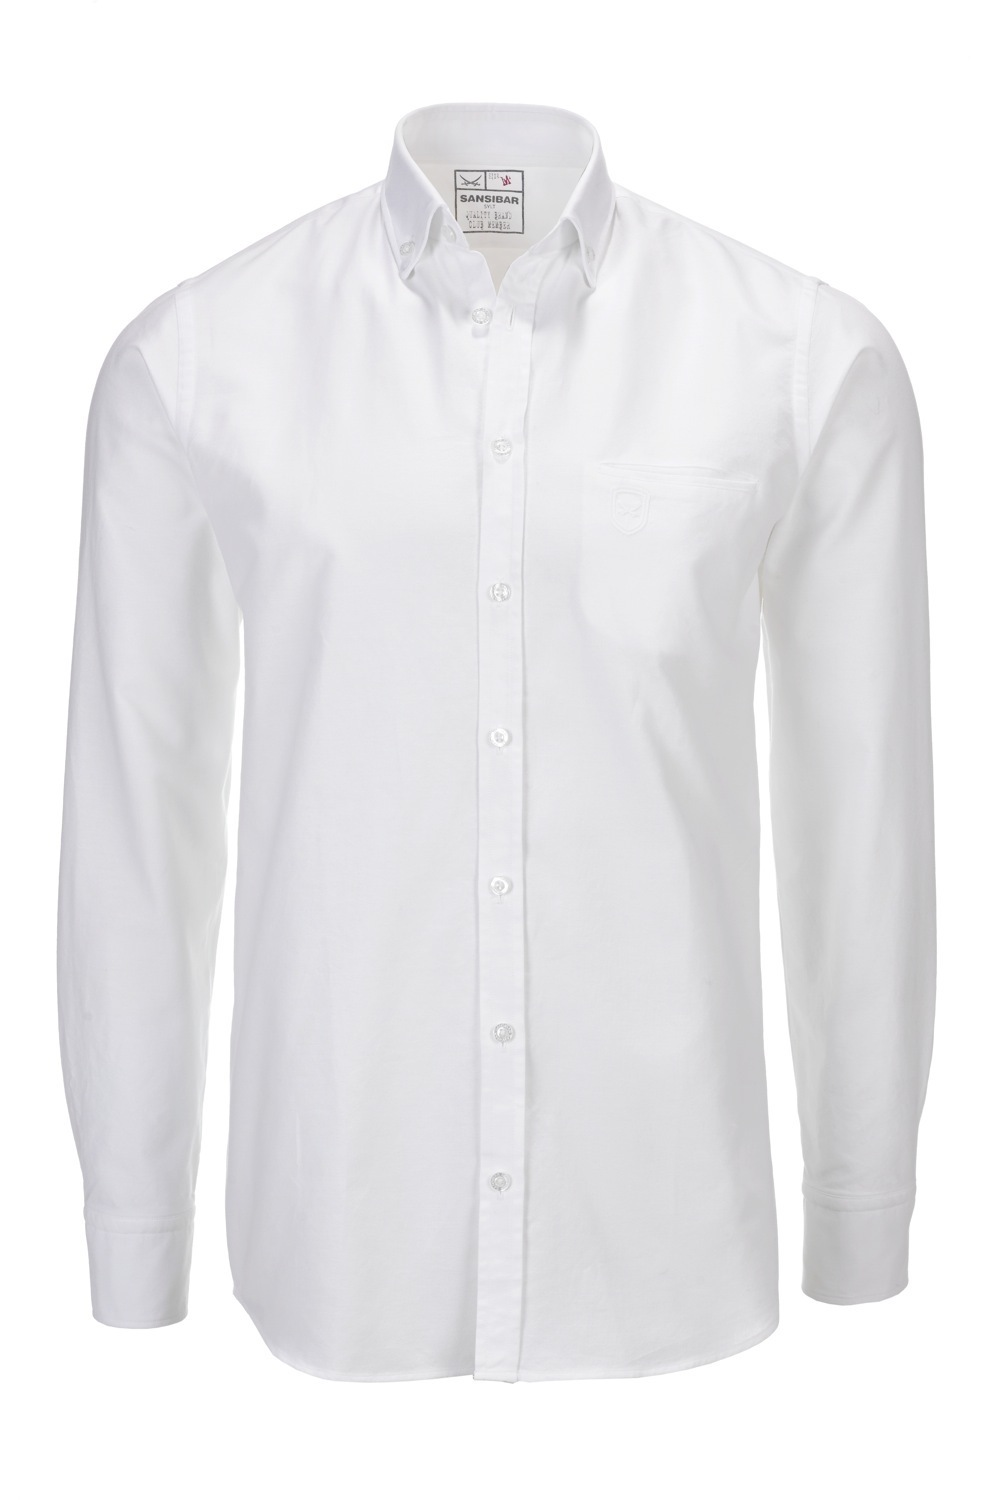 Herren Hemd OXFORD slim fit, White, Gr. S